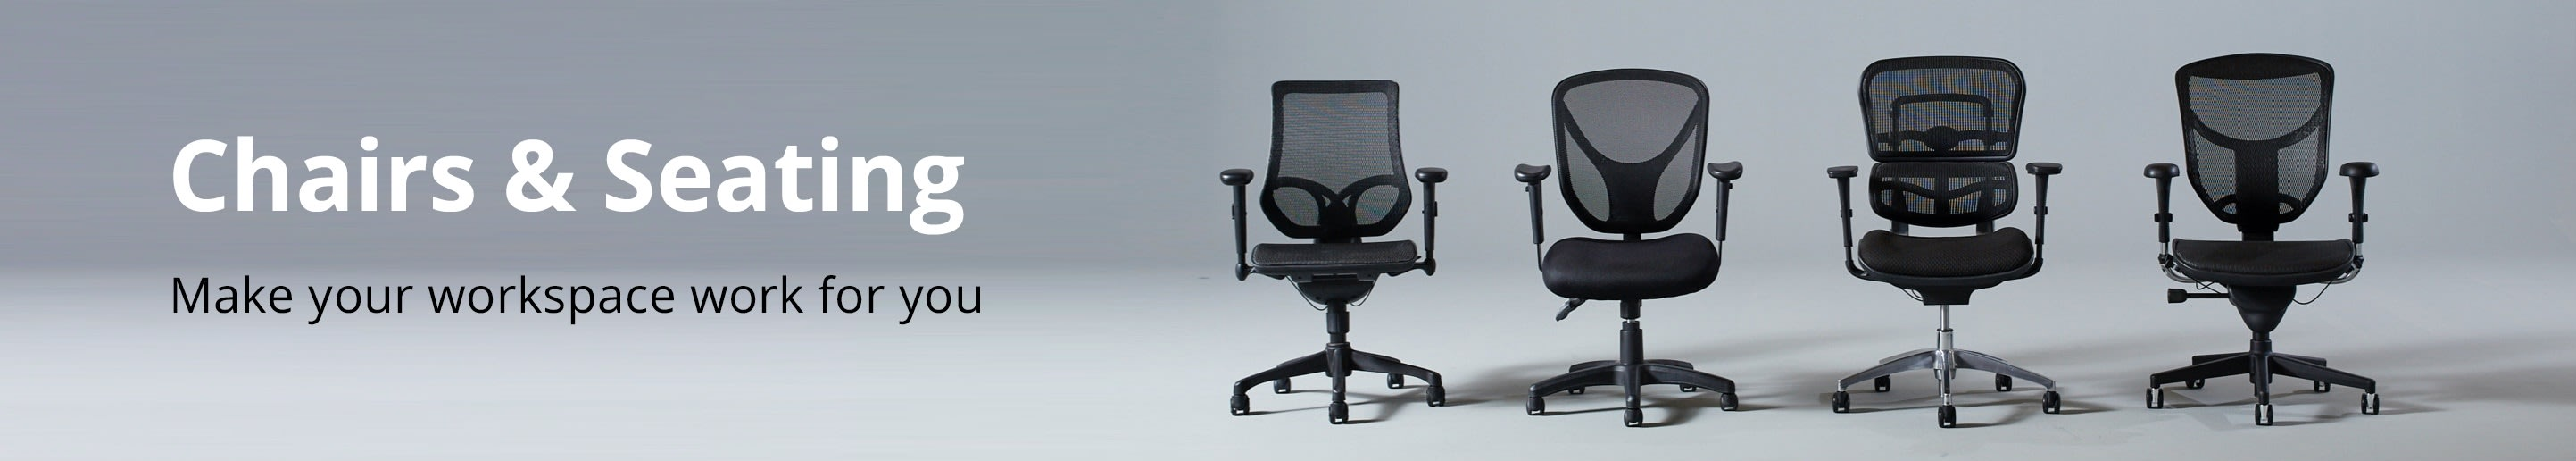 Chairs & Seating. Make your workspace work for you